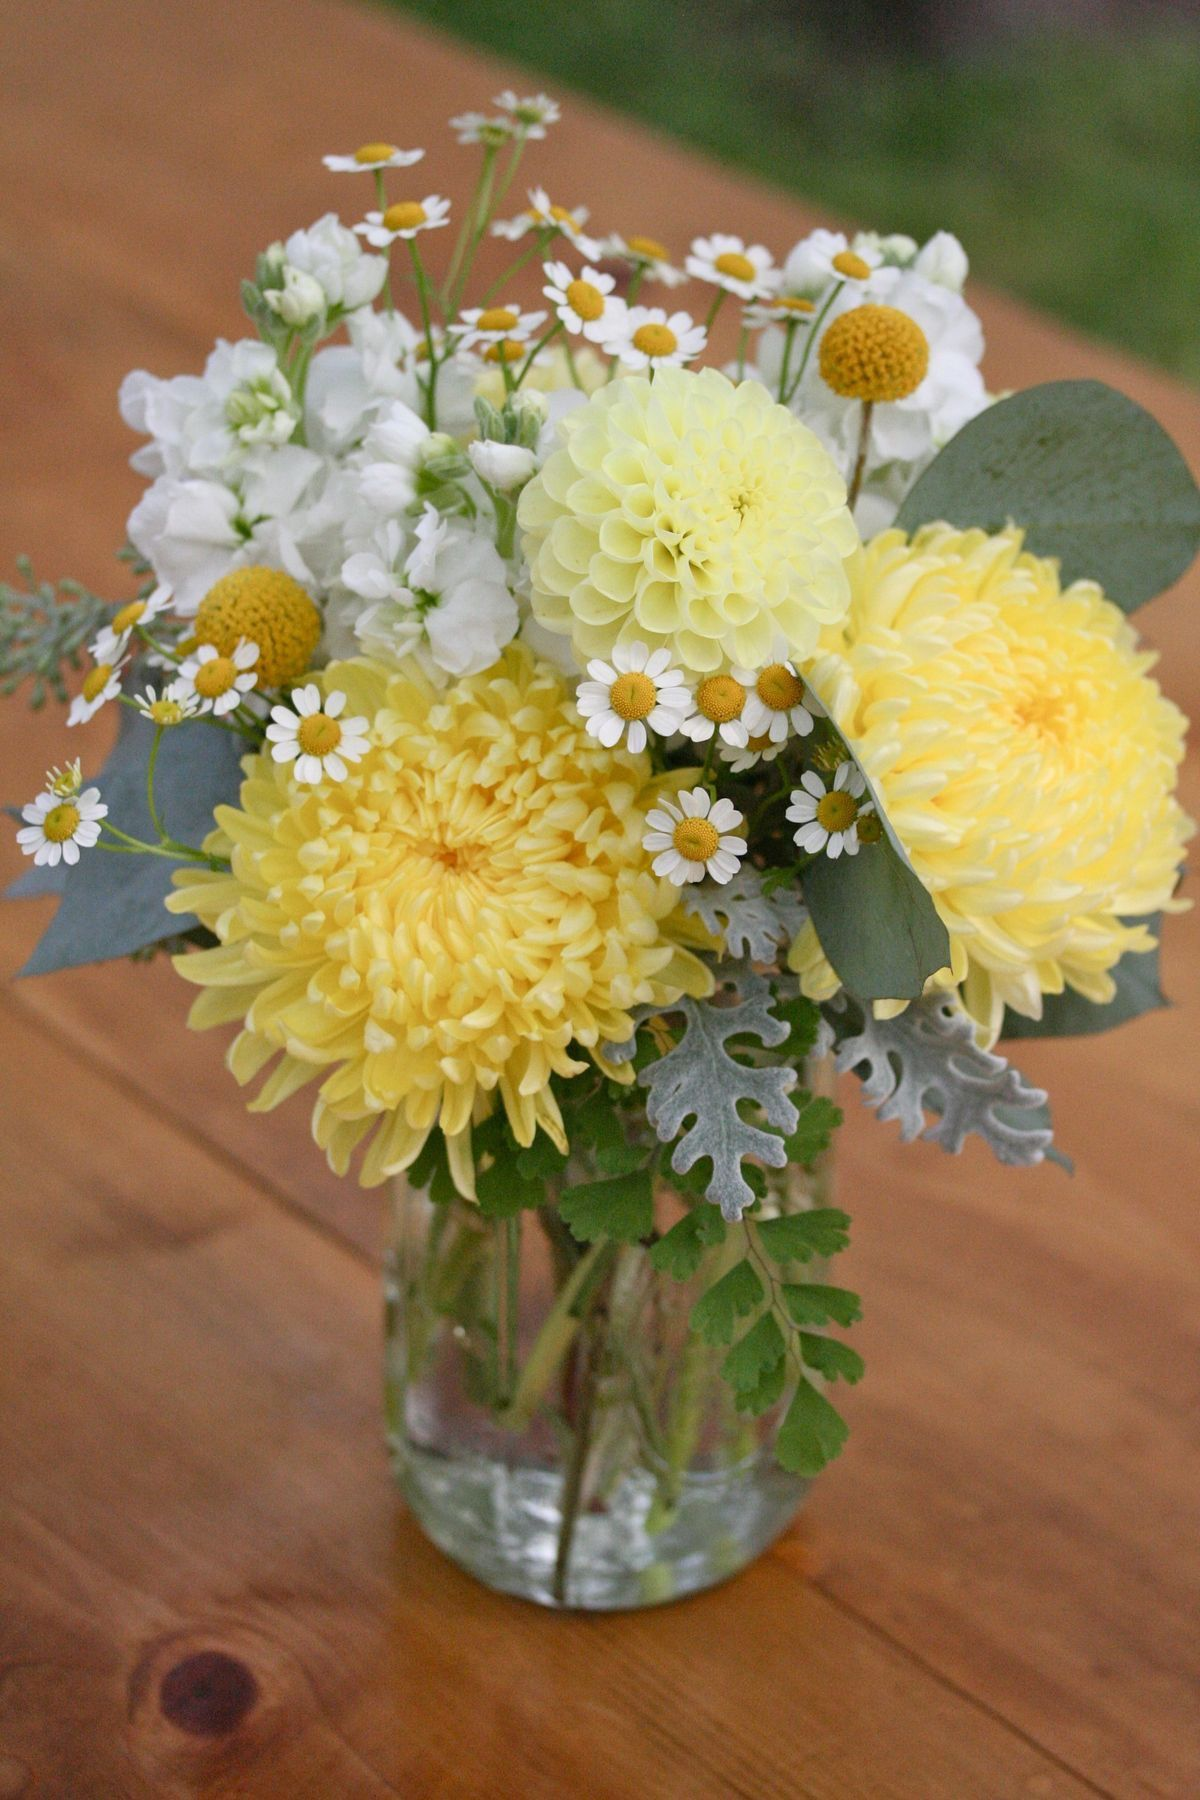 Idea by surrogate grandparents usa on flowers to send